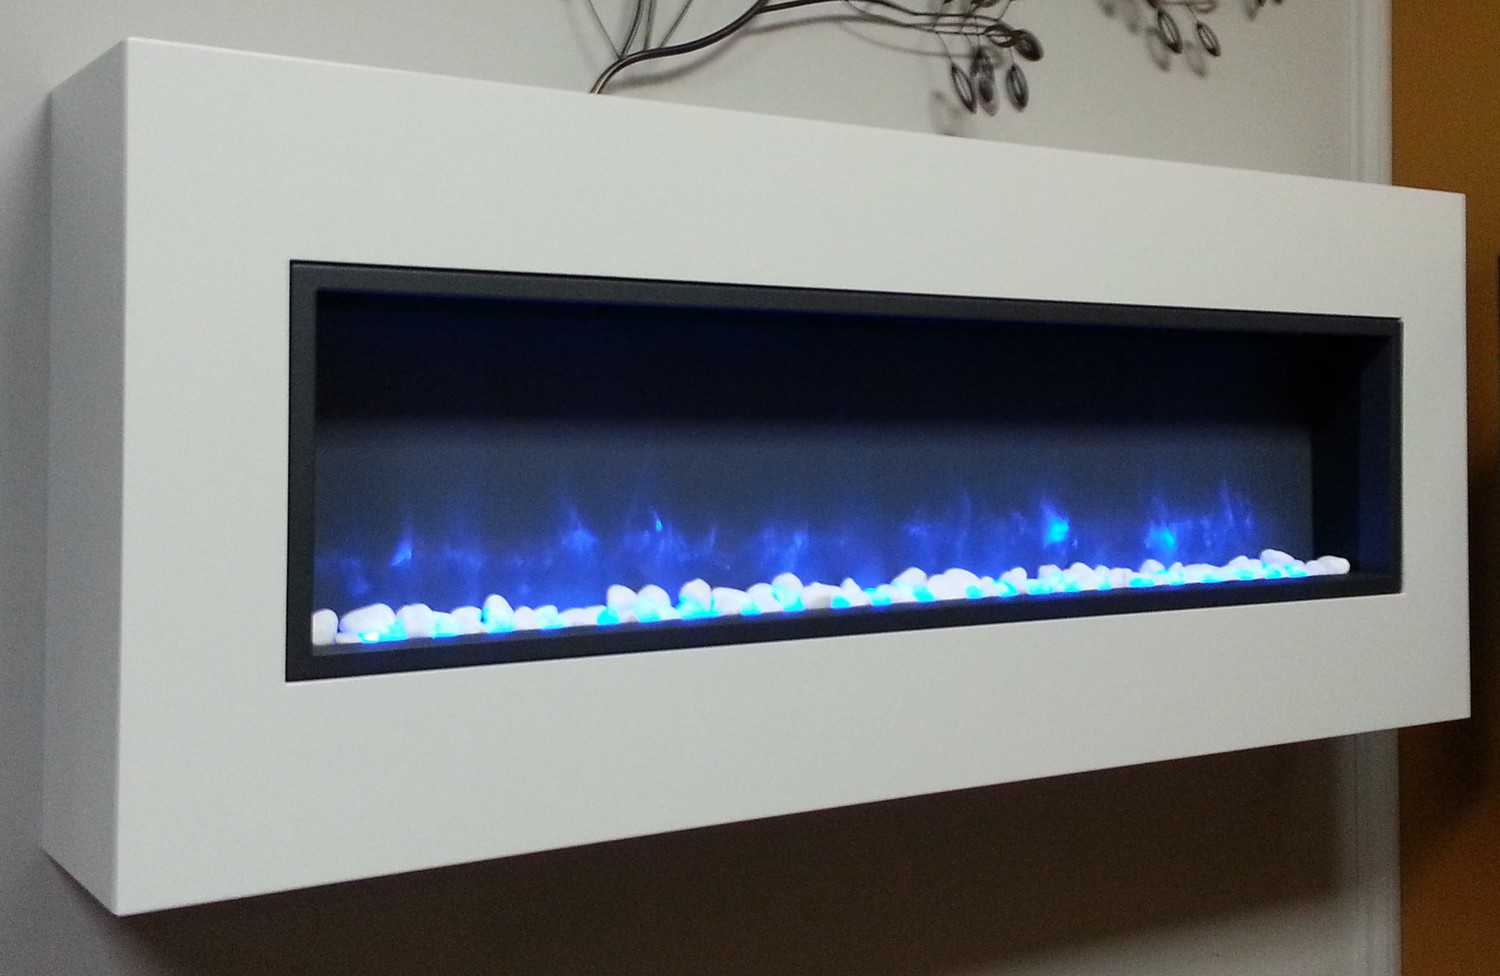 Incredible Product Review Dynasty Bt 55 Linear Electric Fireplace Home Interior And Landscaping Oversignezvosmurscom